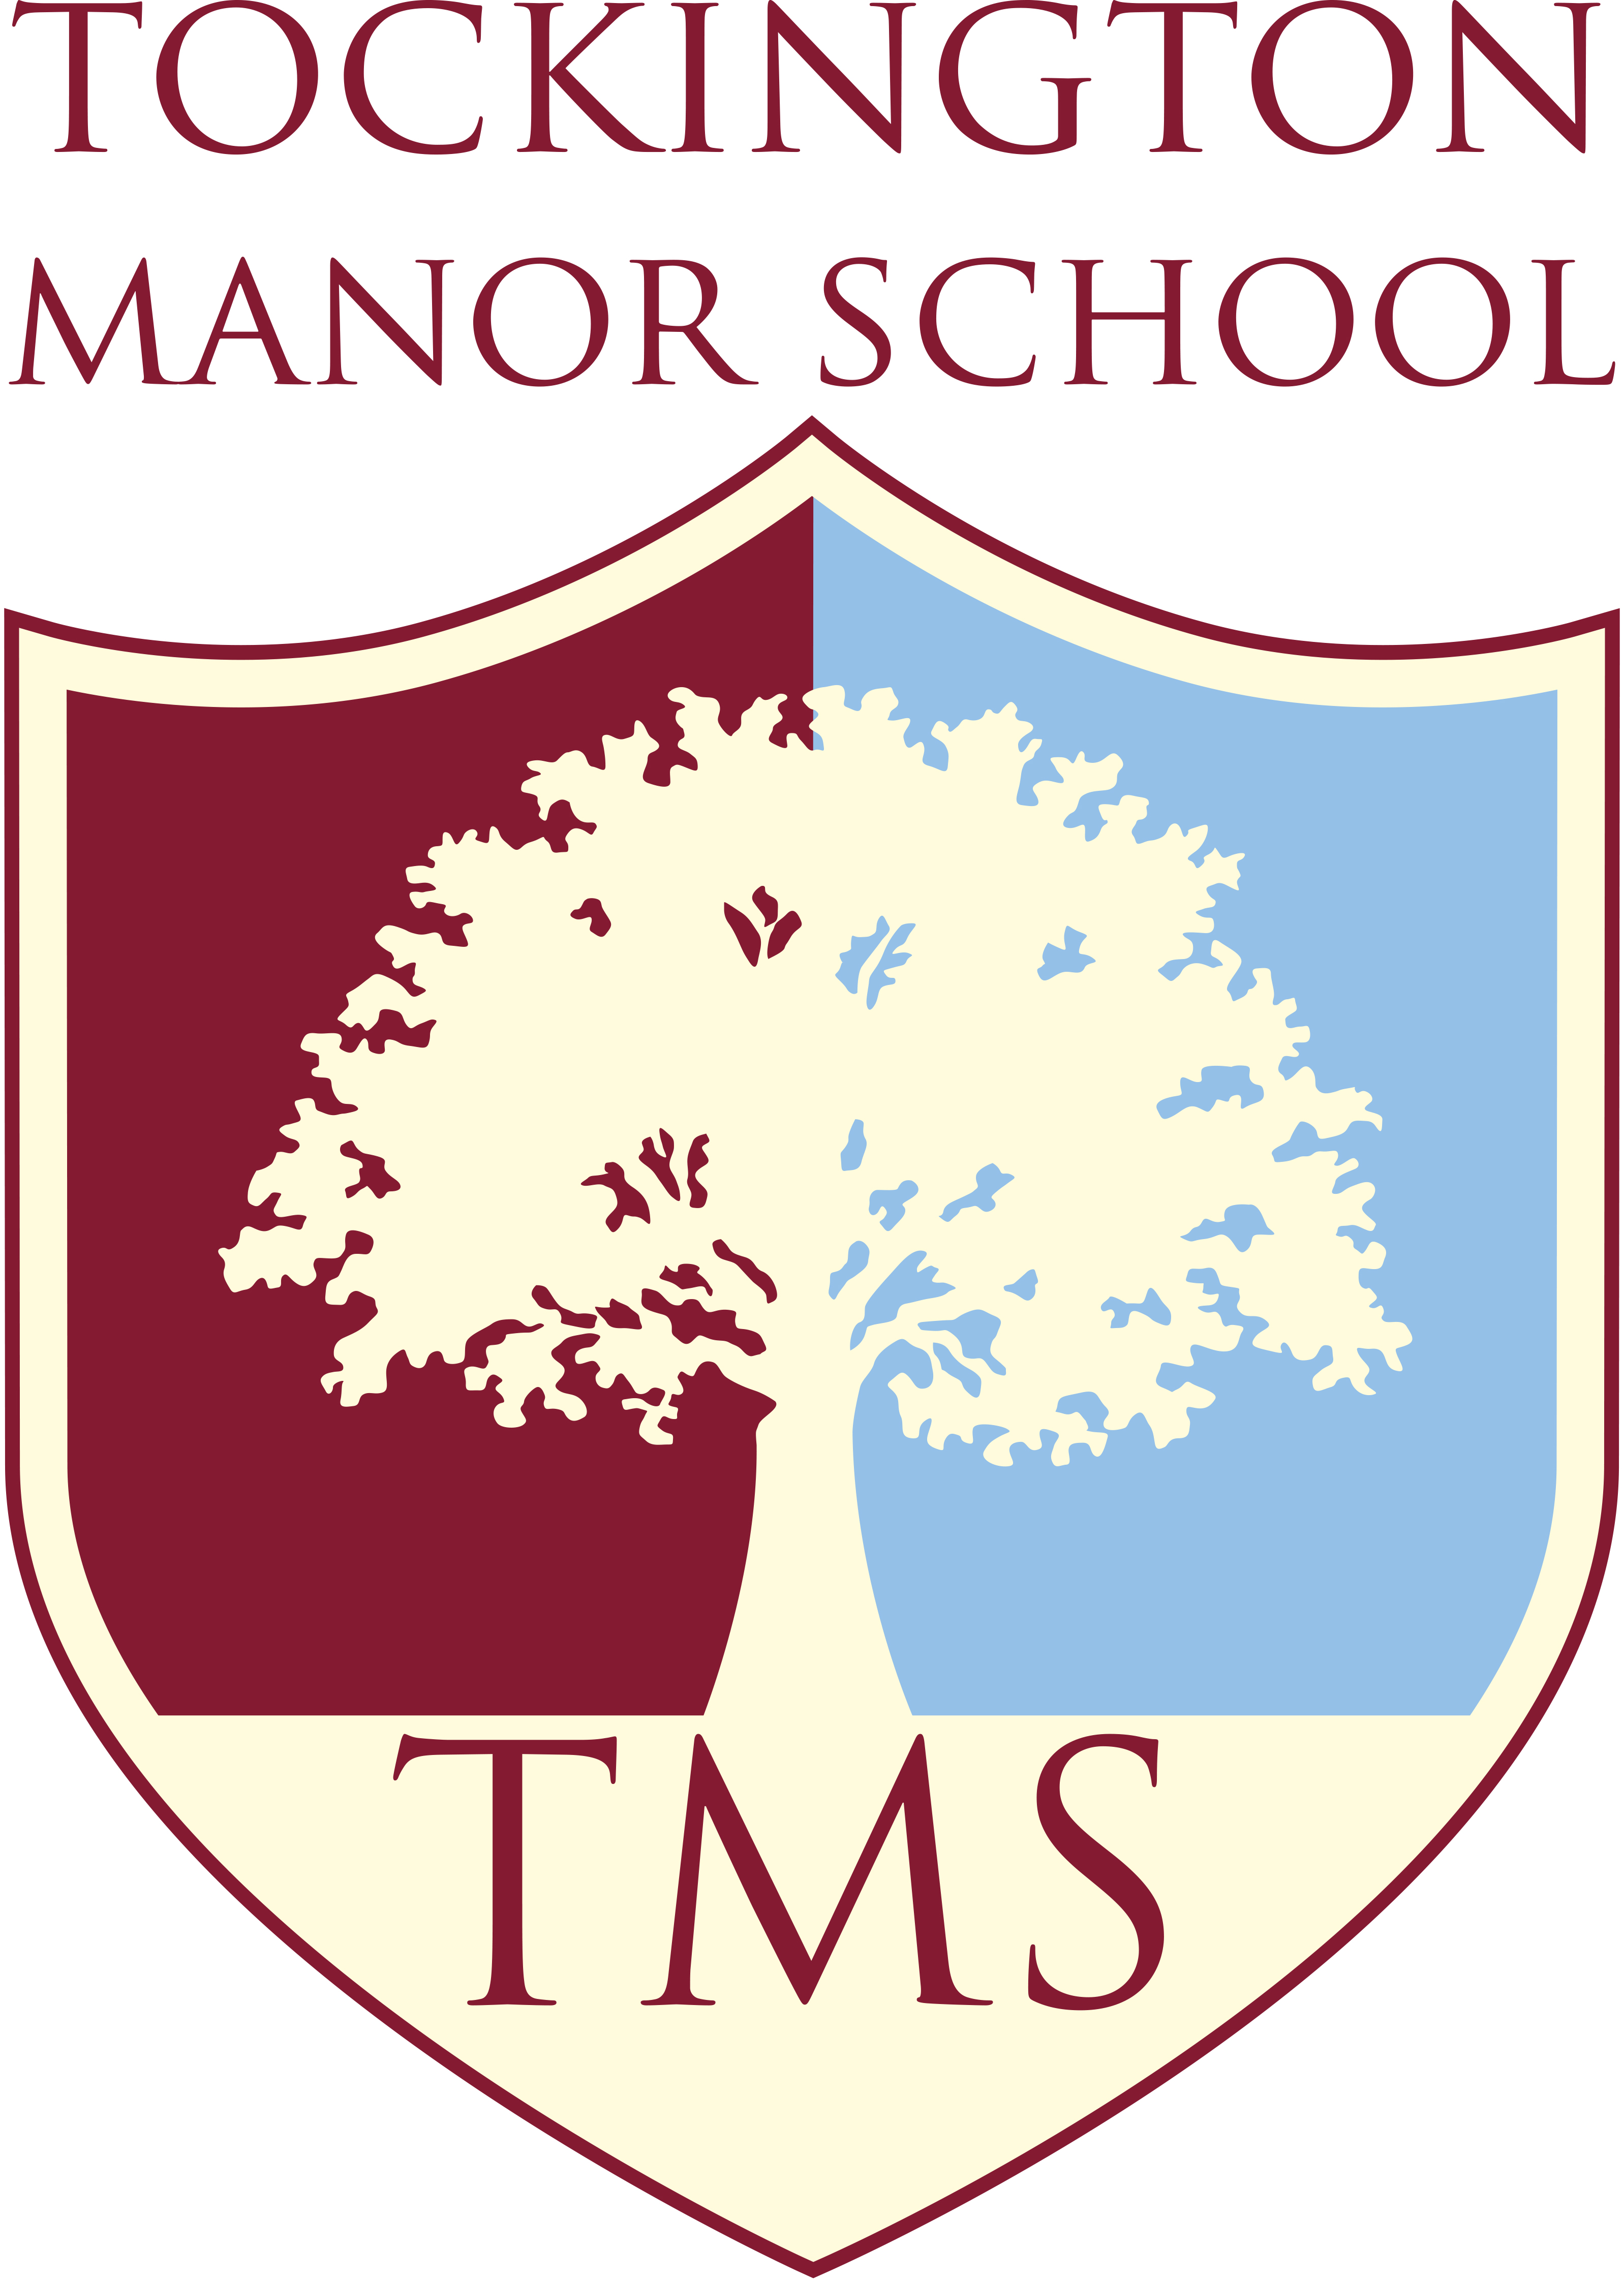 Tockington Manor School